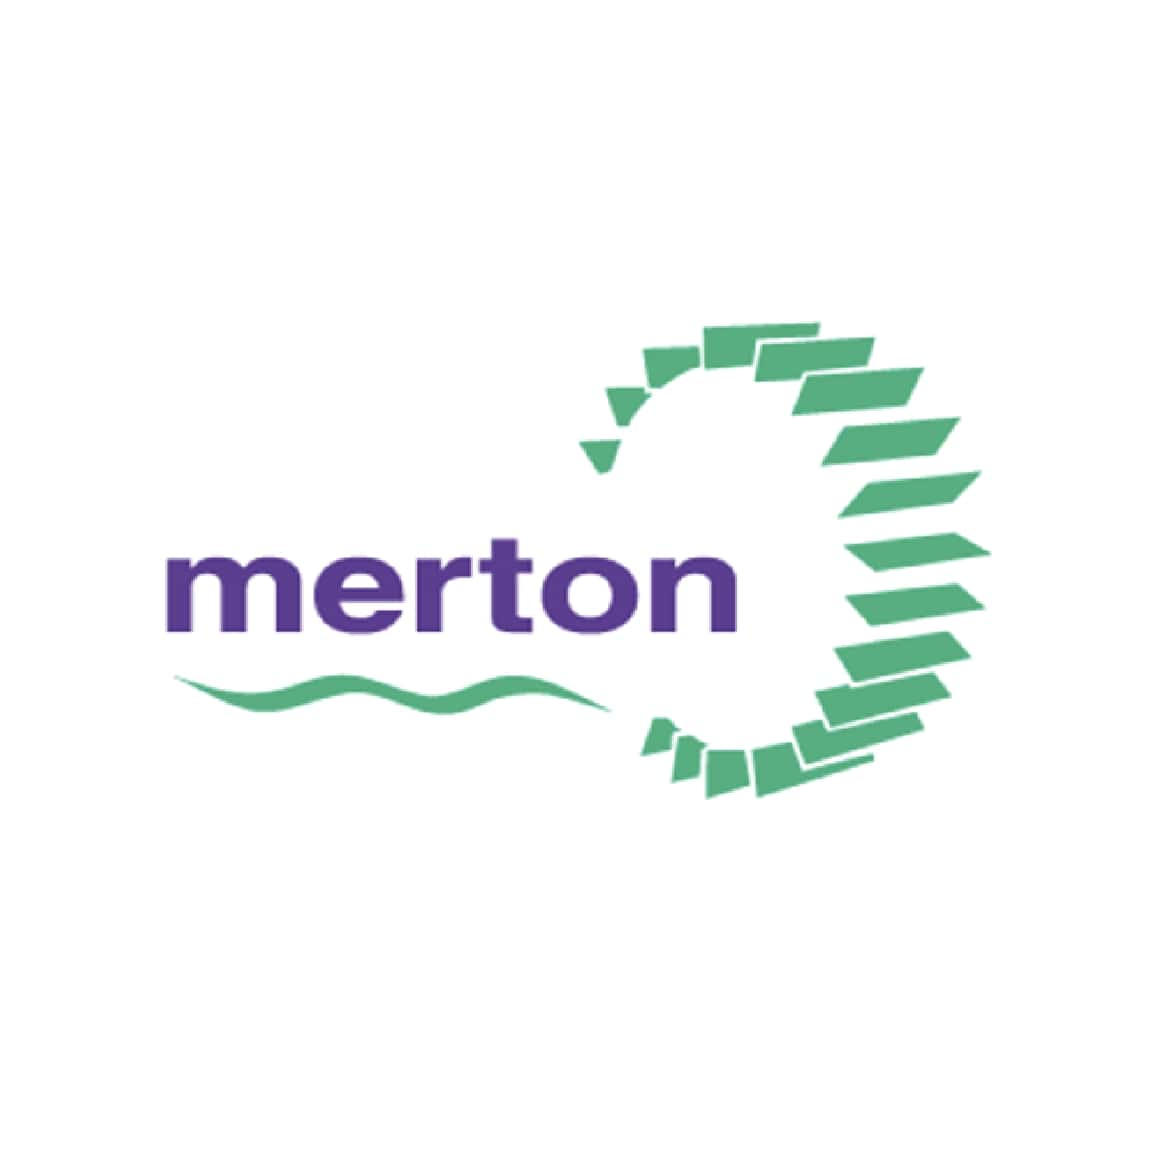 London Borough of Merton link